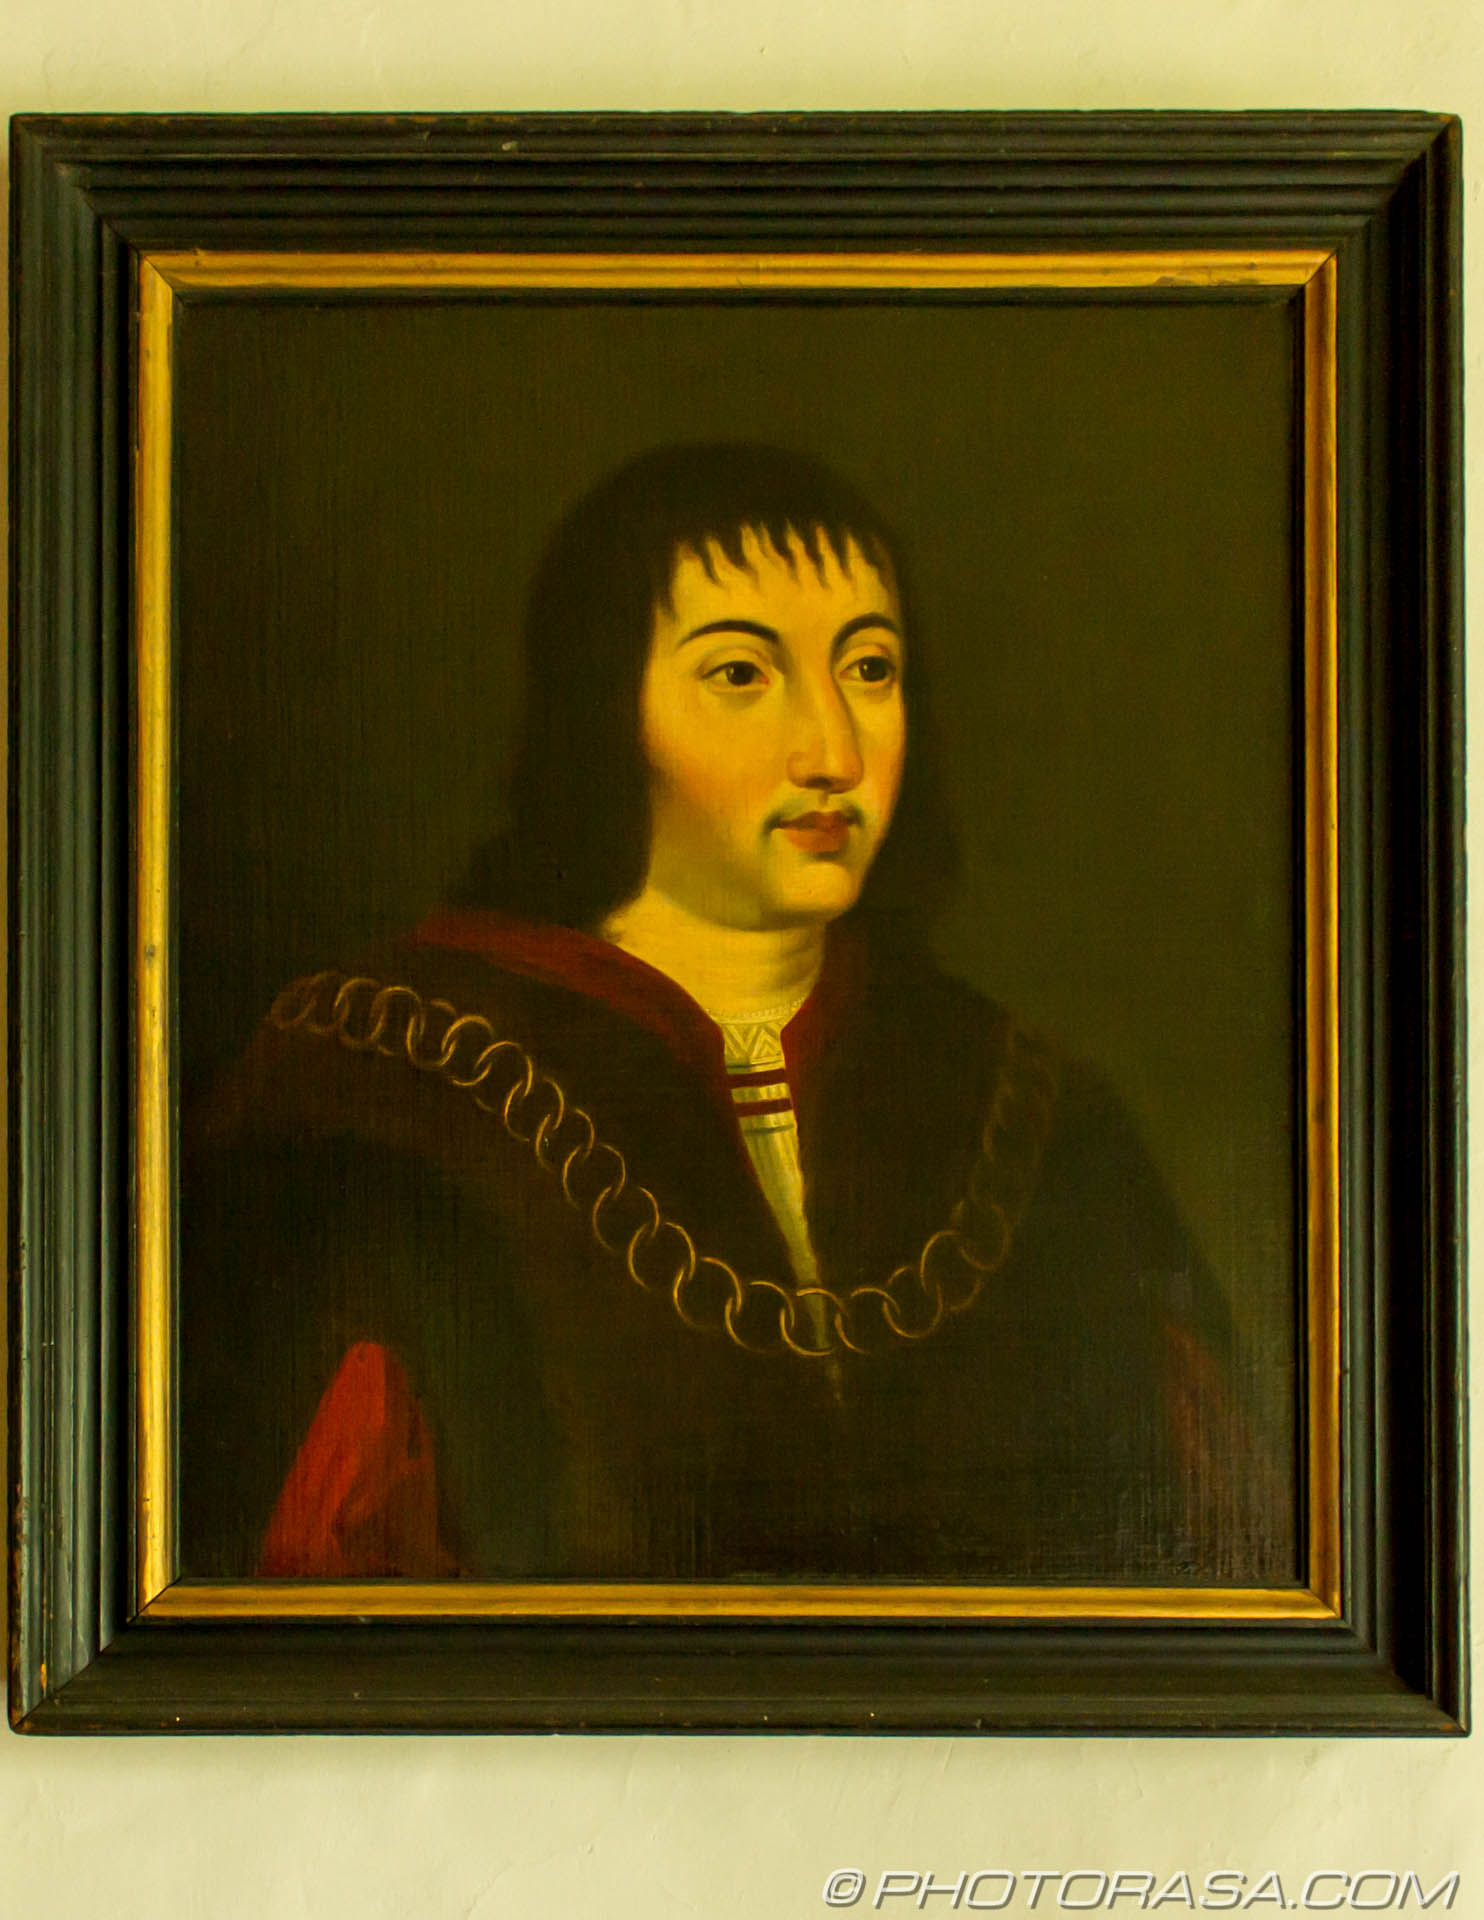 http://photorasa.com/stoneacre-house-paintings/painting-of-unknown-man-wearing-gold-linked-chain/